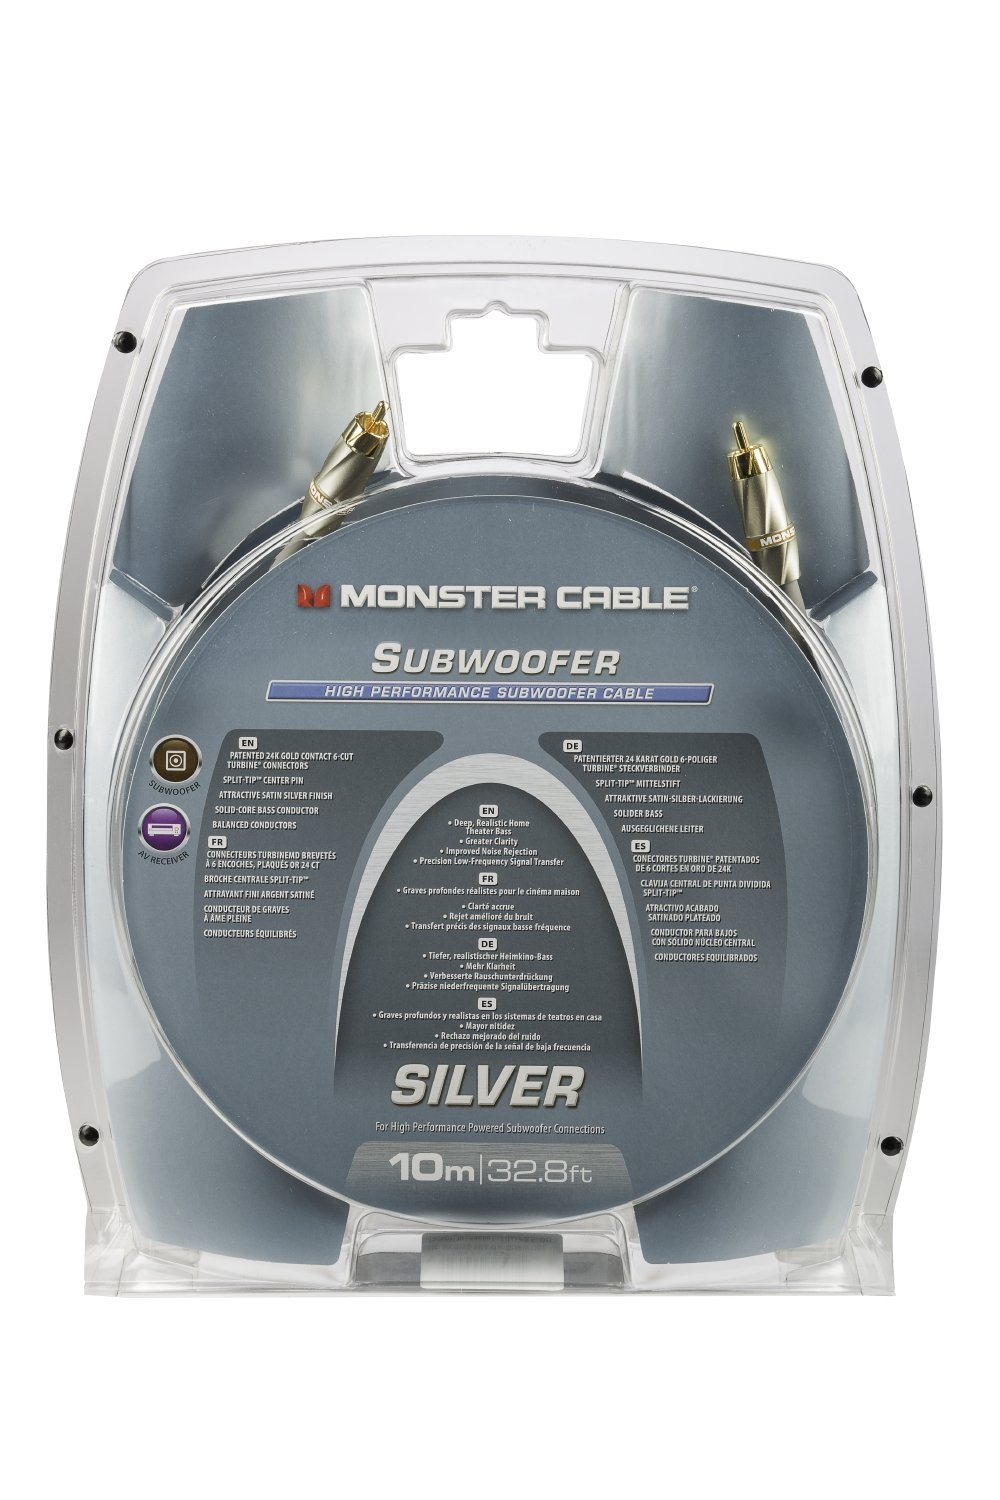 Monster Cable Silver High Performance Subwoofer Audio Cable, 10M (32.8 Ft) … by Monster (Image #2)